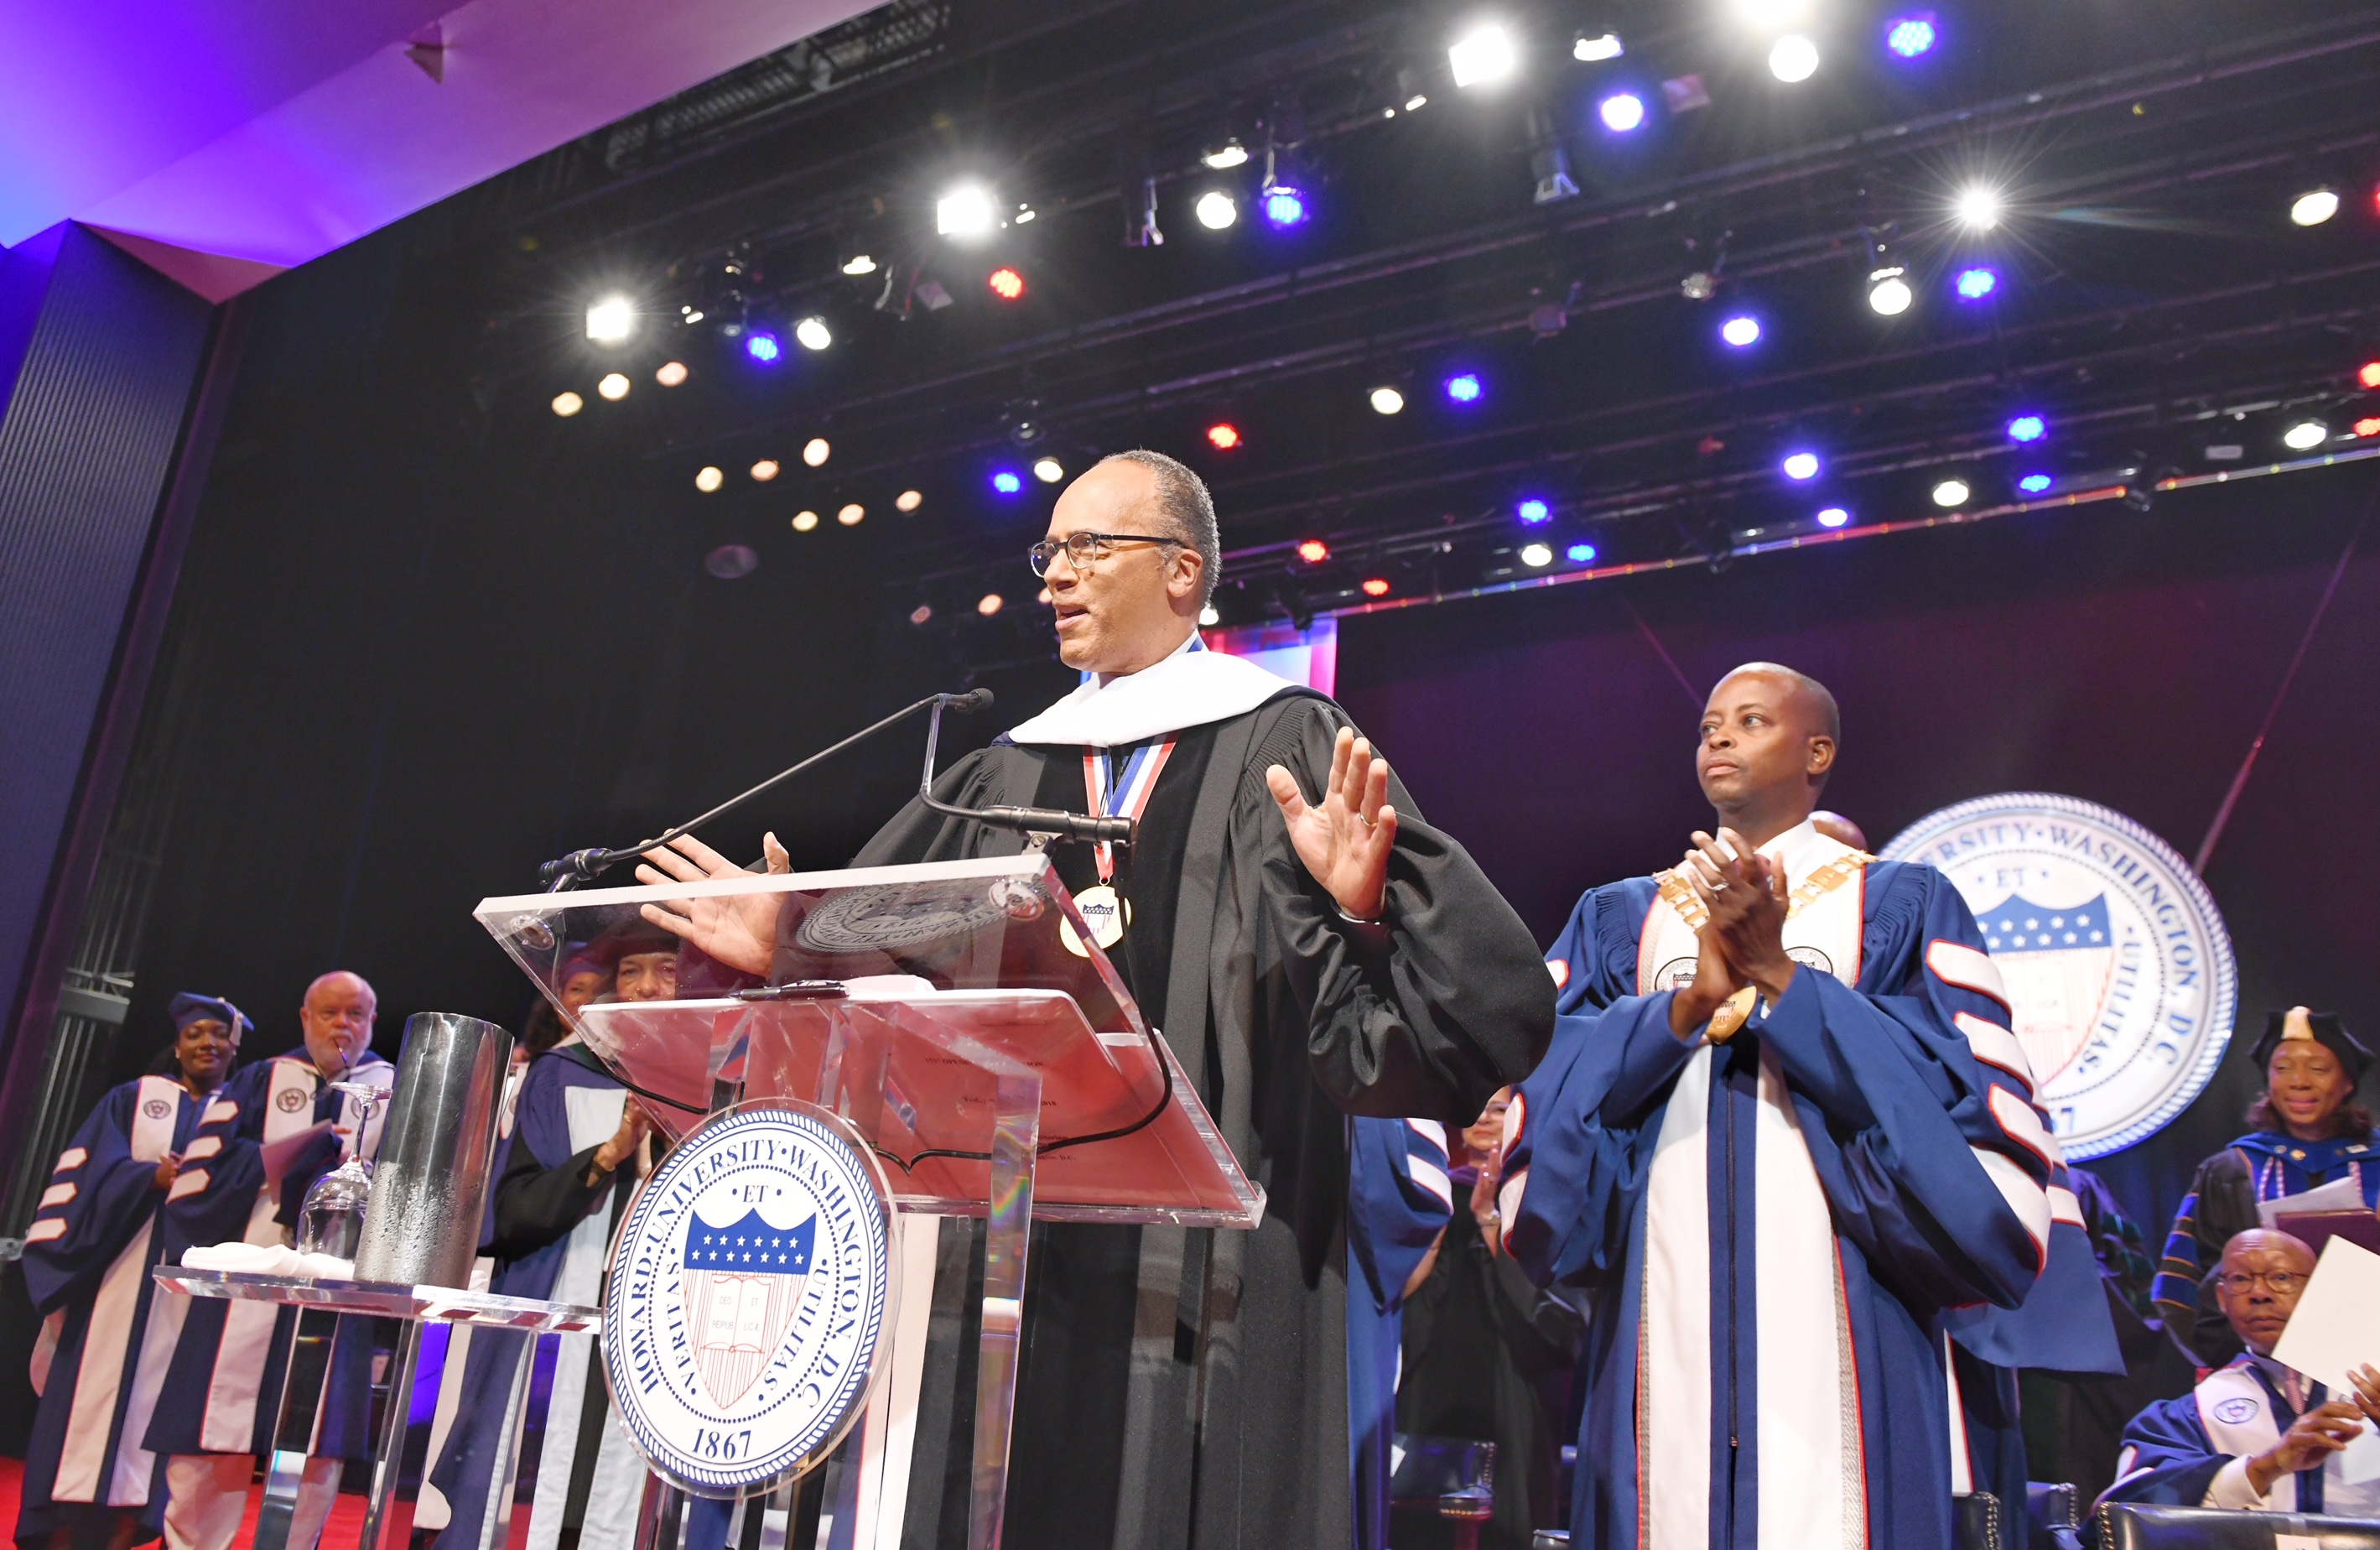 Howard University, gave way to their 151st opening convocation with award-winning journalist, NBC anchor Lester Holt, who received an honorary doctorate during the event. (Photo: Howard University)